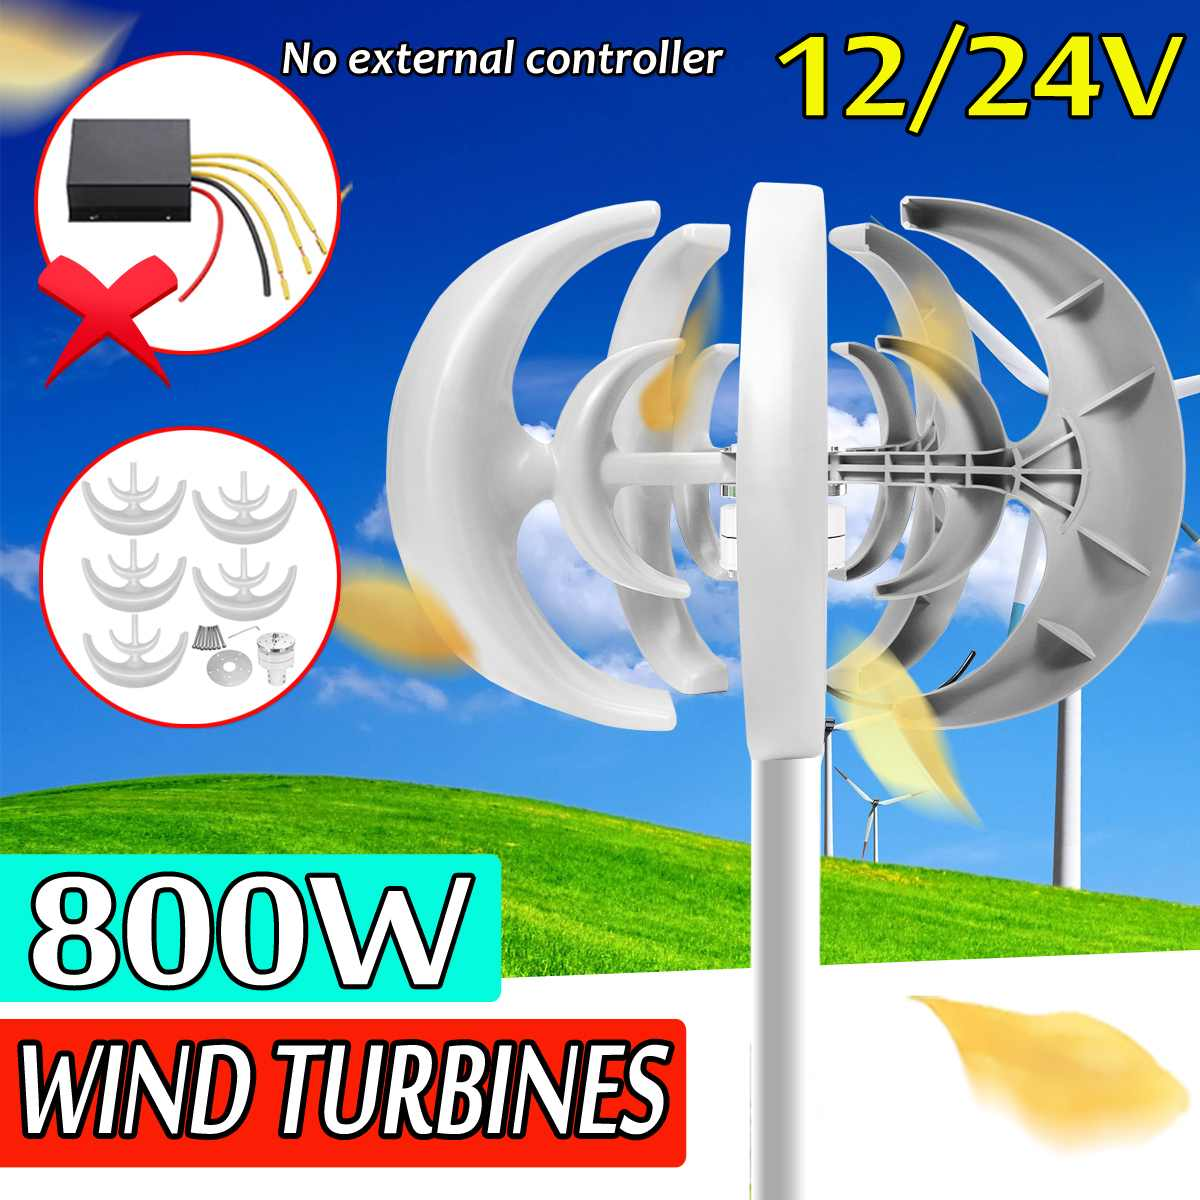 <font><b>800W</b></font> DC 12/24v <font><b>Wind</b></font> power <font><b>generator</b></font> 5 blades <font><b>wind</b></font> For Home Streetlight Use Alternative Energy Vertical axis double-helix image